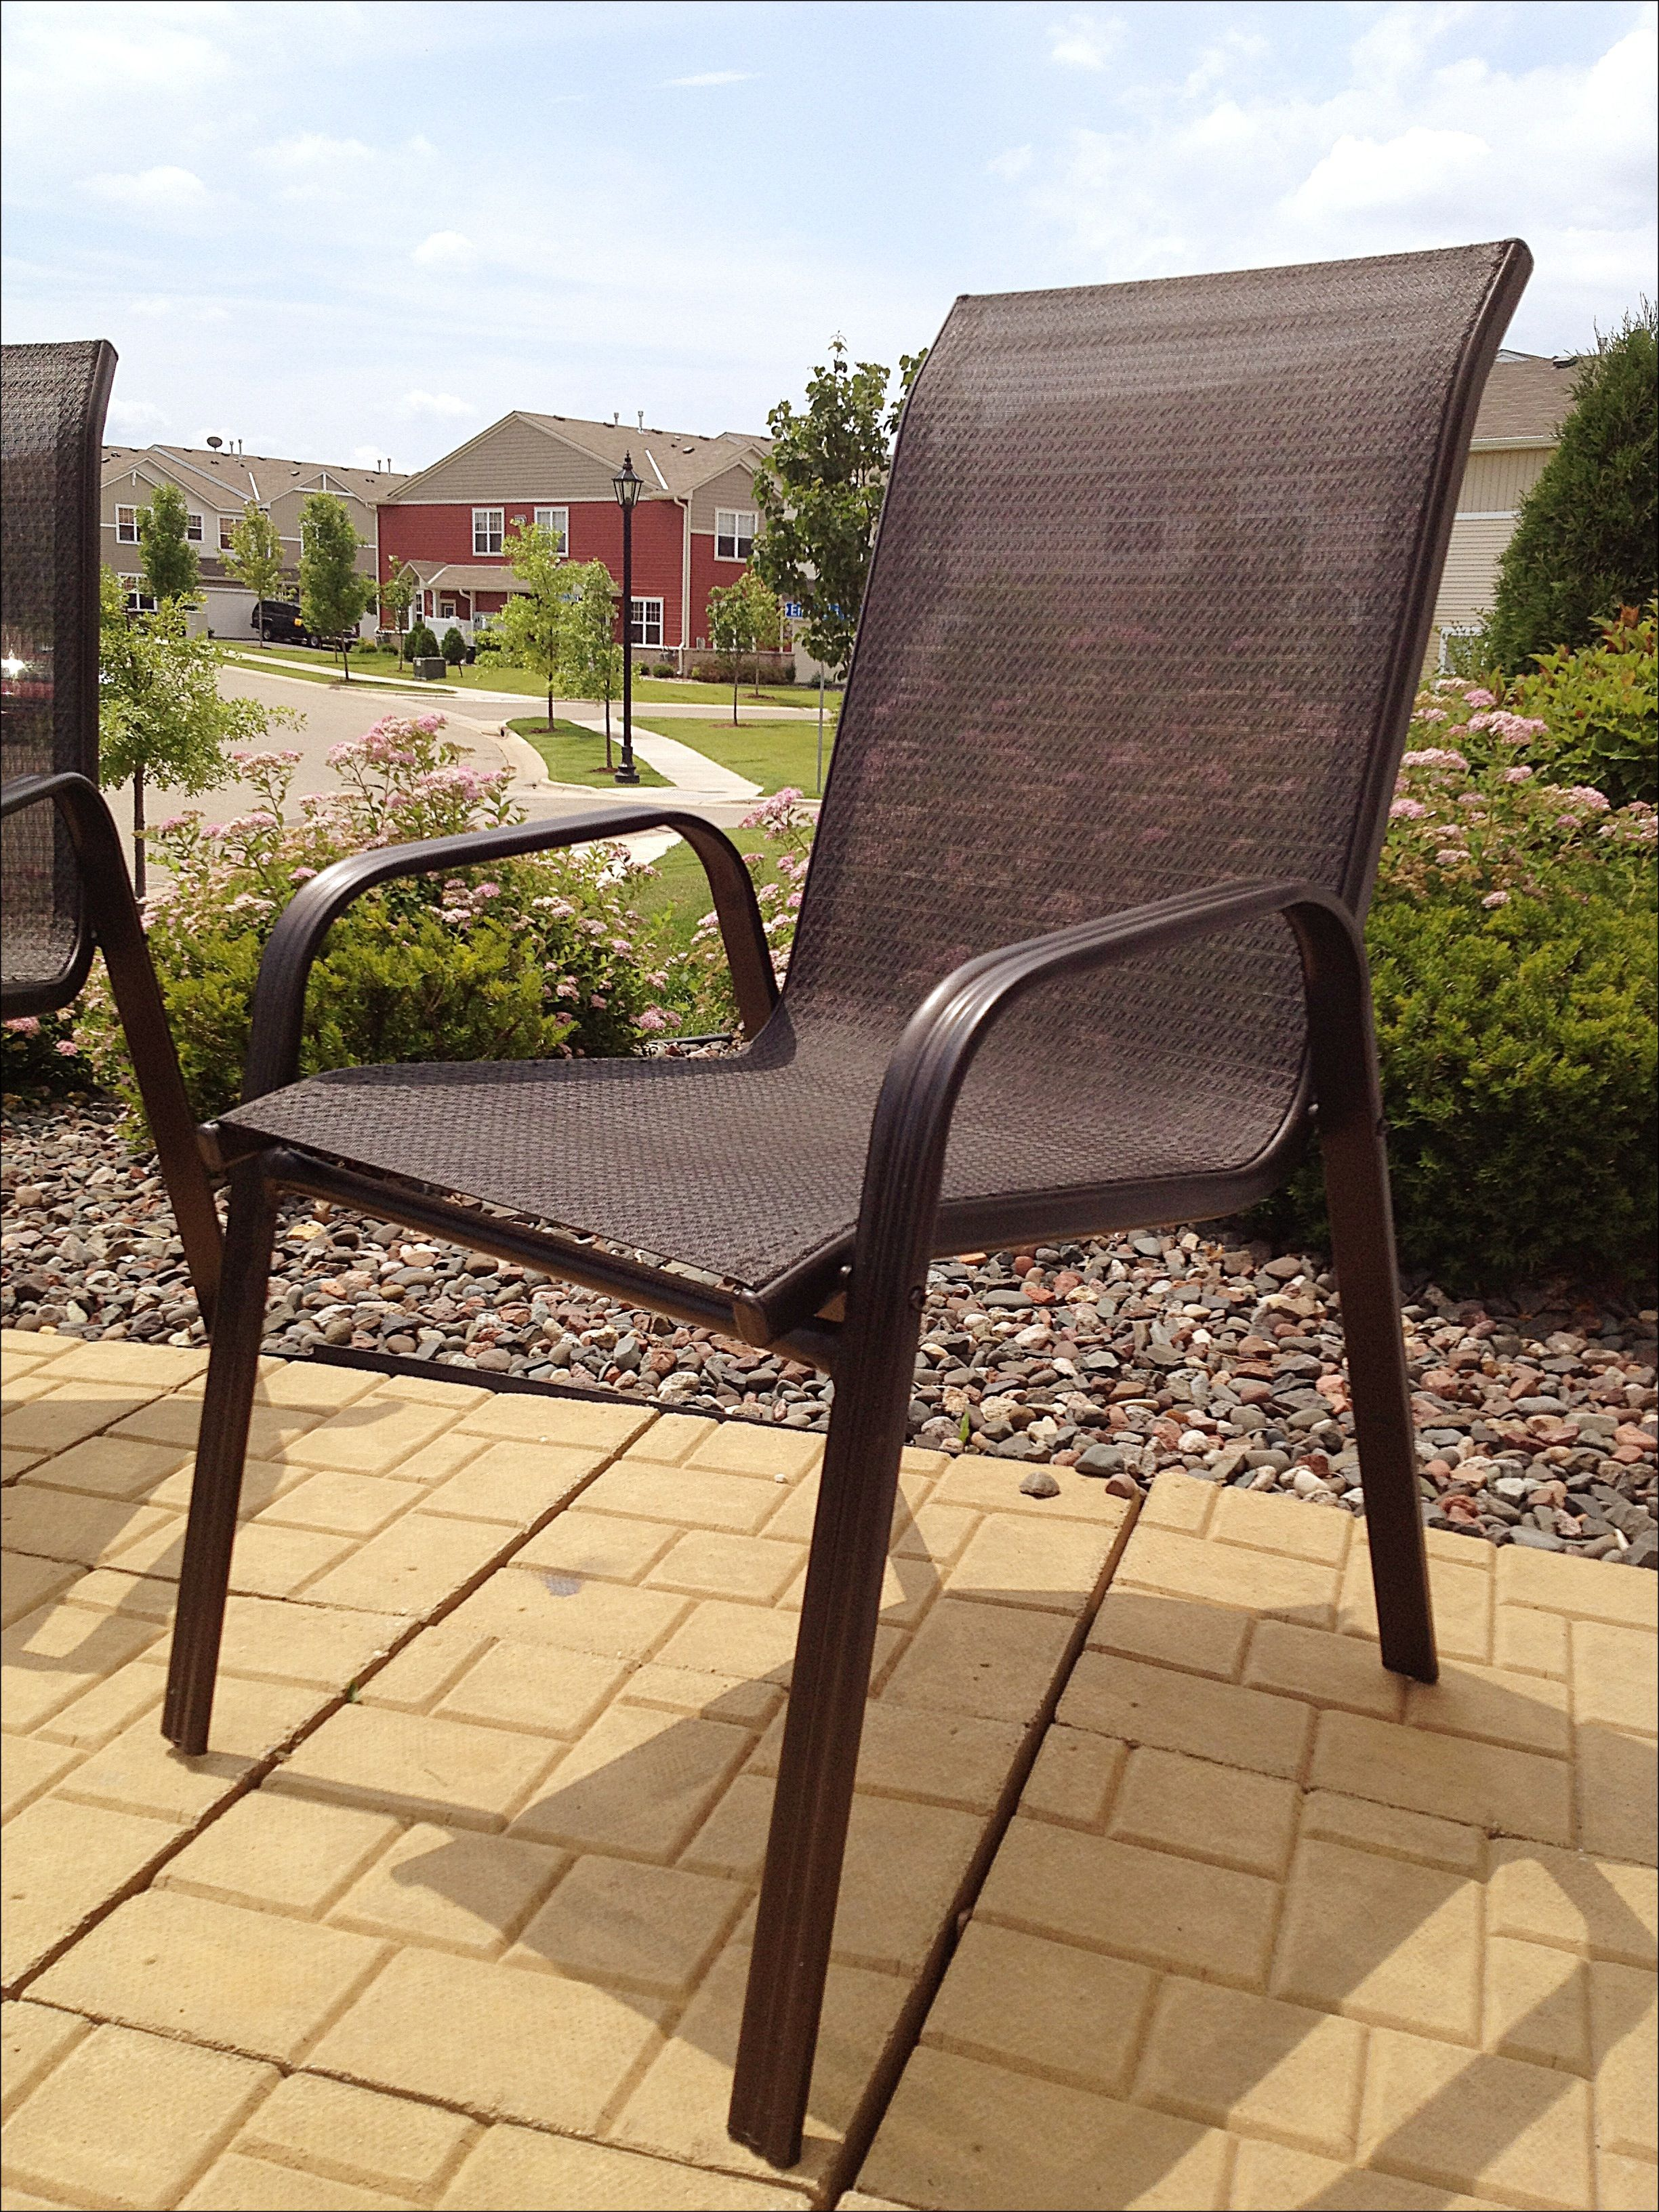 Spray Paint Patio Furniture Rust Oleum | Tag Archives: Spray Paint Patio  Furniture